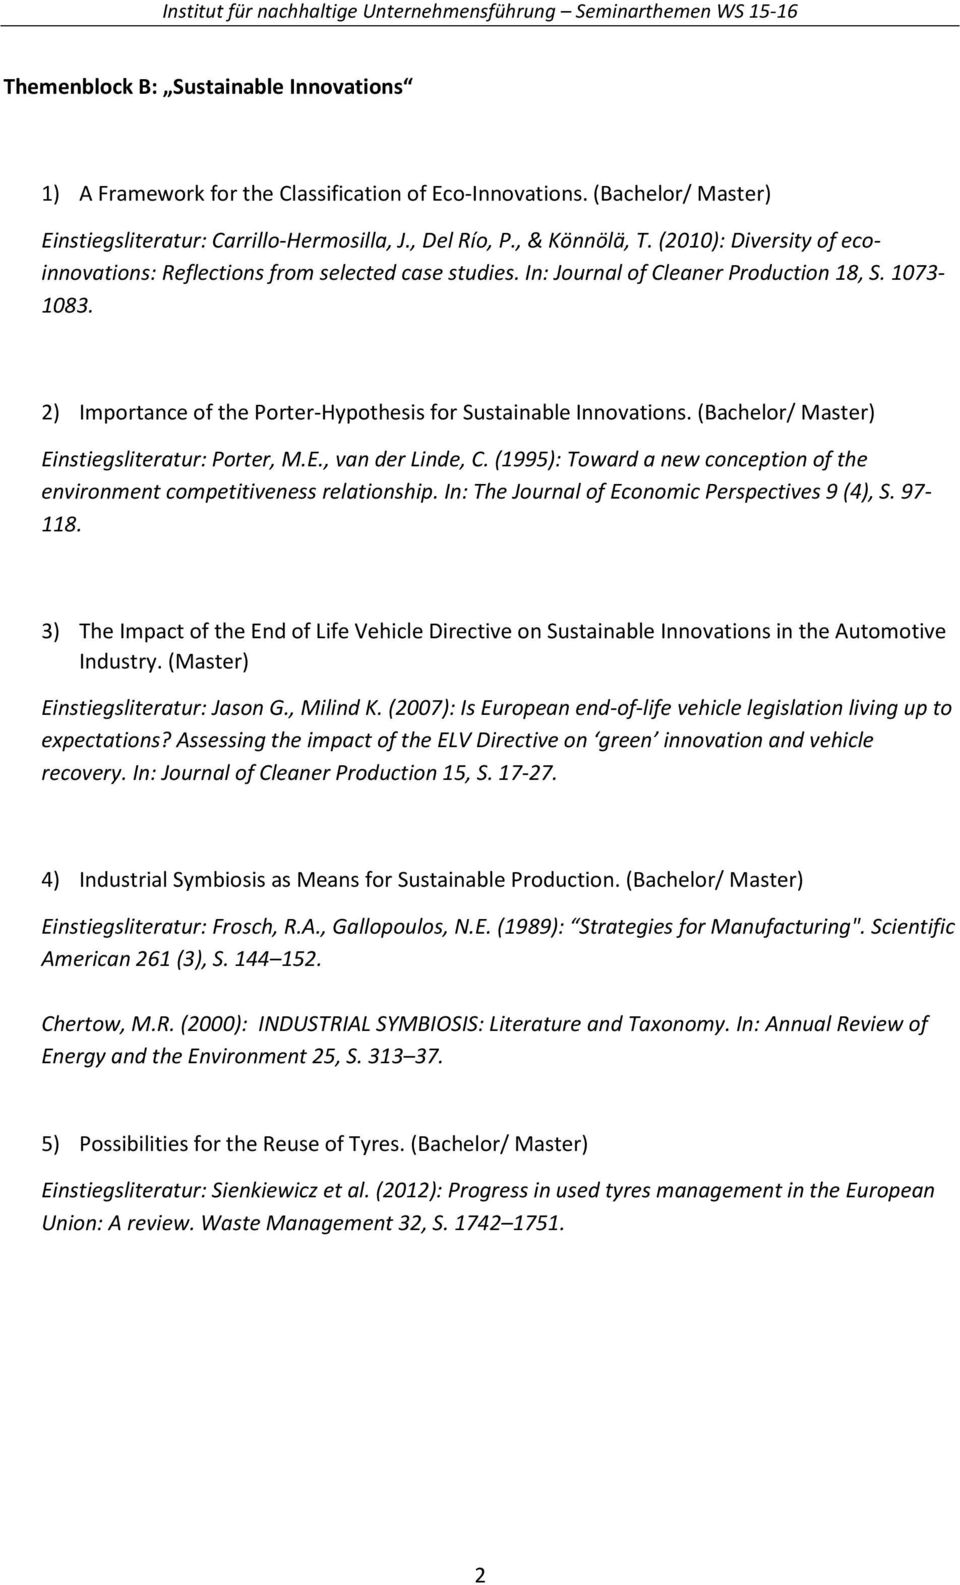 (Bachelor/ Master) Einstiegsliteratur: Porter, M.E., van der Linde, C. (1995): Toward a new conception of the environment competitiveness relationship.